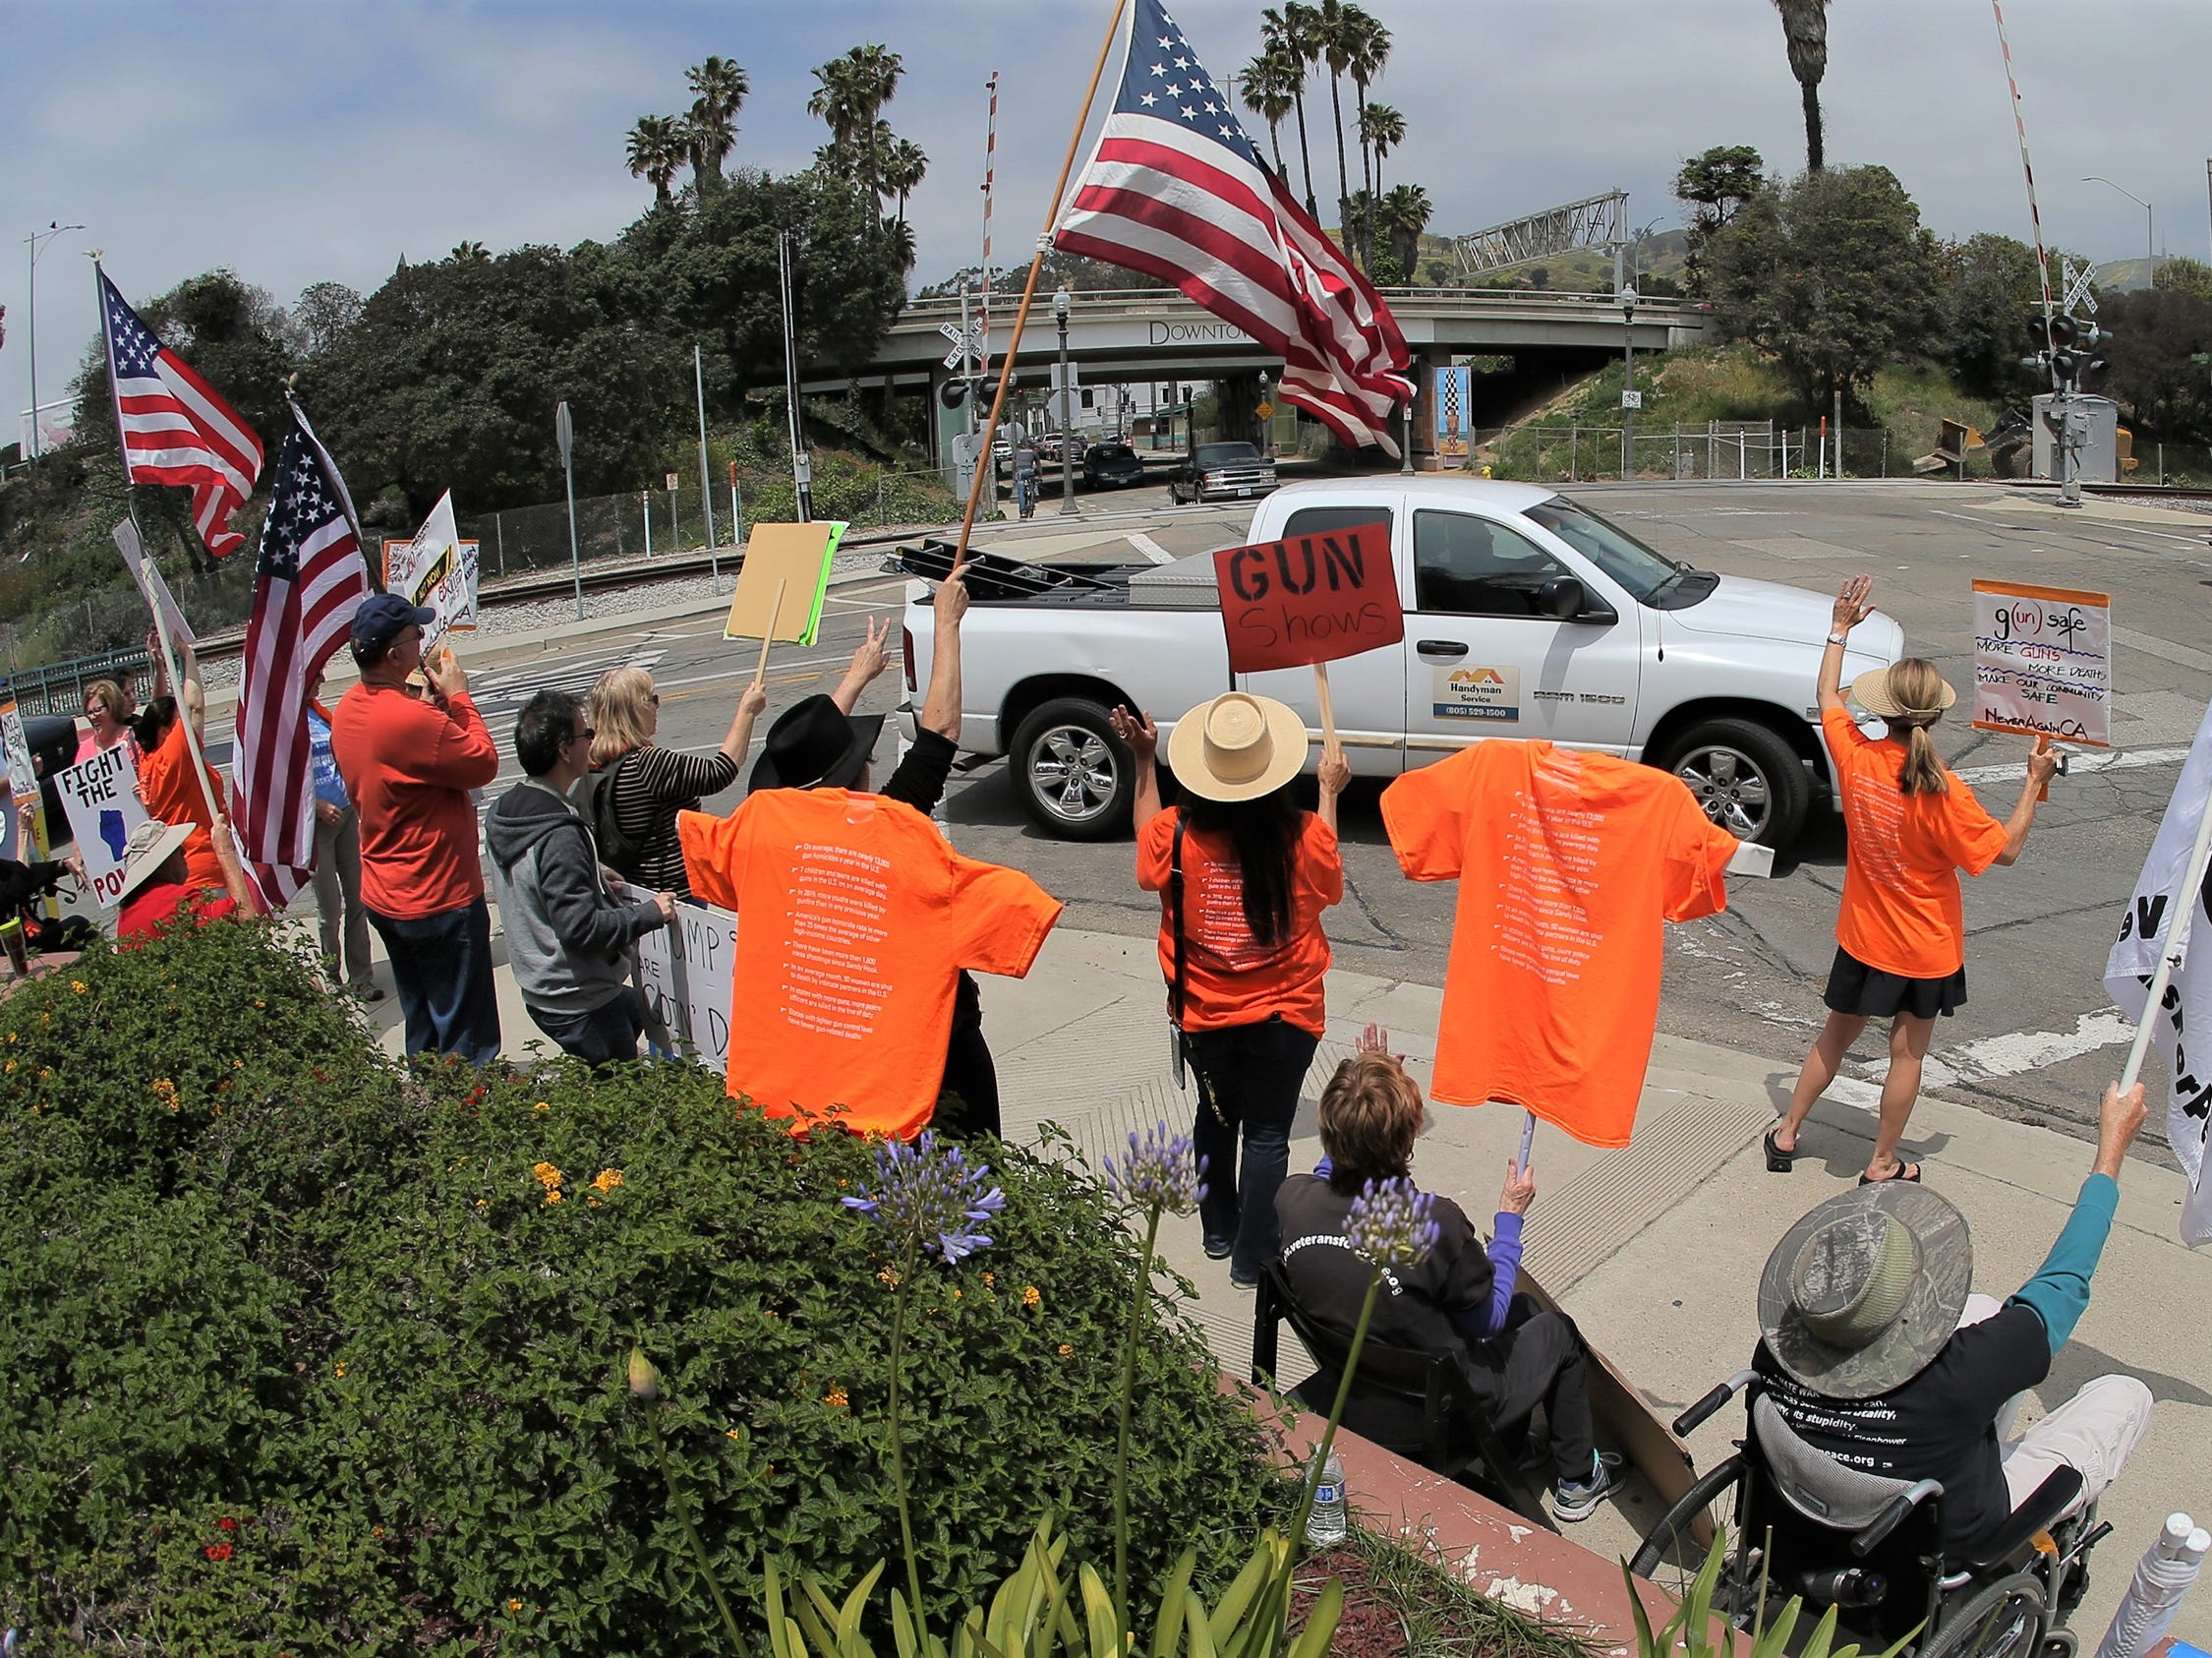 Gun-control advocates protest on Saturday outside the Crossroads of the West Gun Show at the Ventura County Fairgrounds.